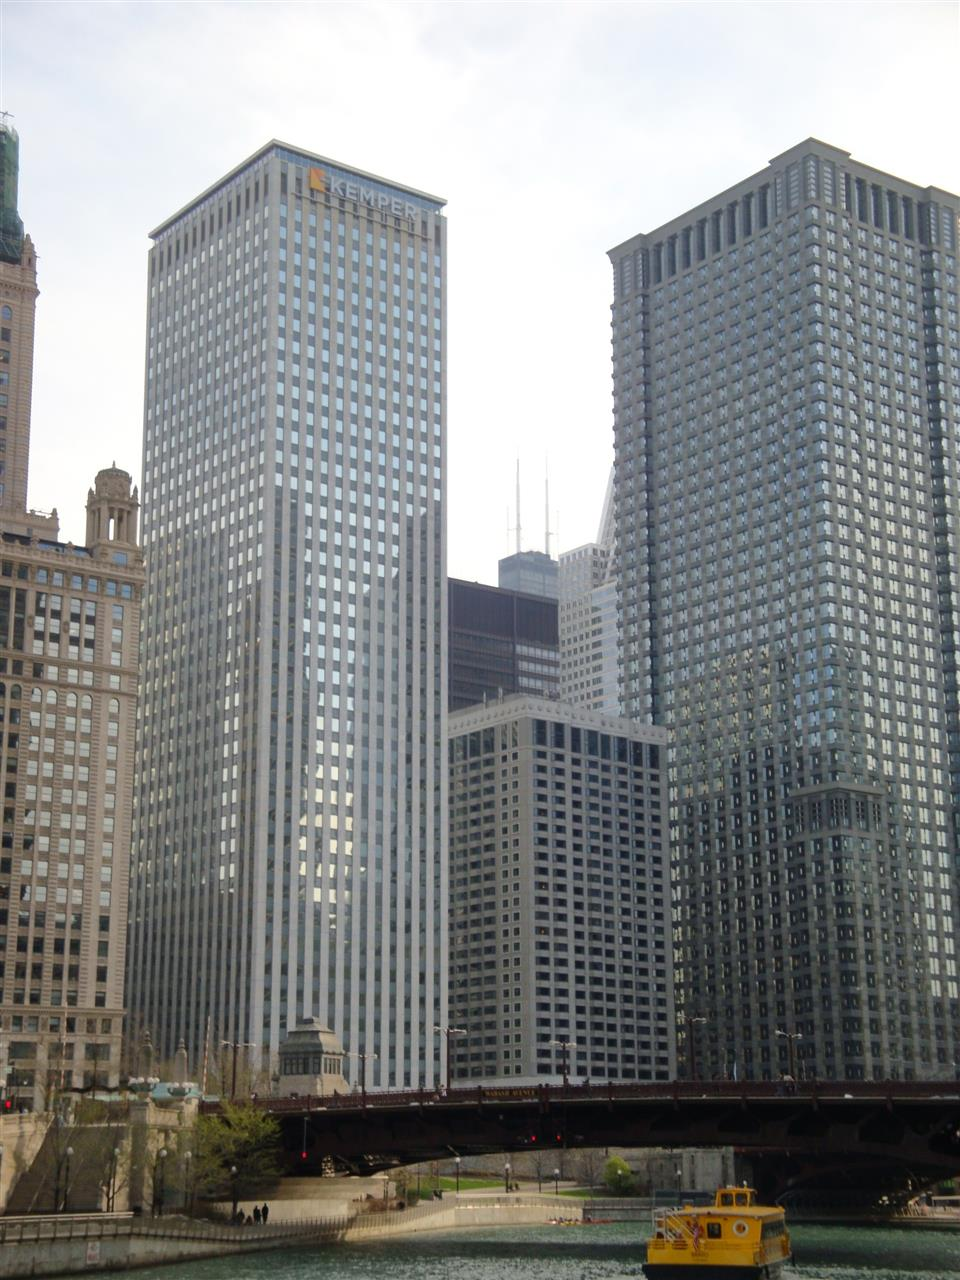 Chicago IL is a great city to photograph on foot or on boat.